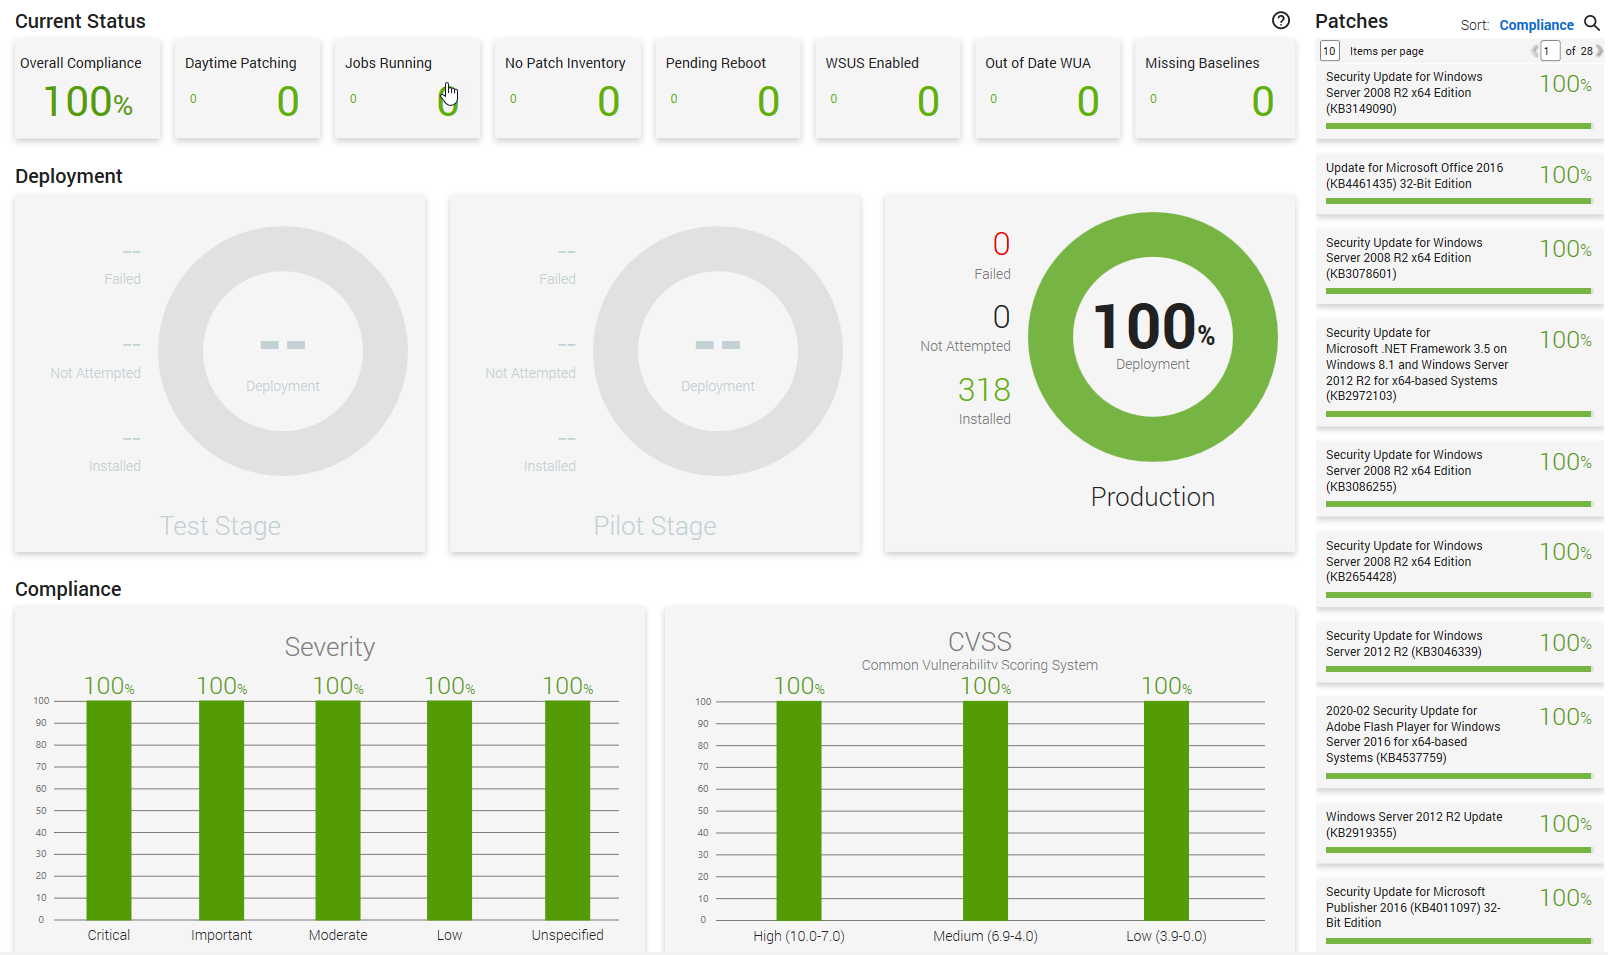 Patch Manager Dashboard